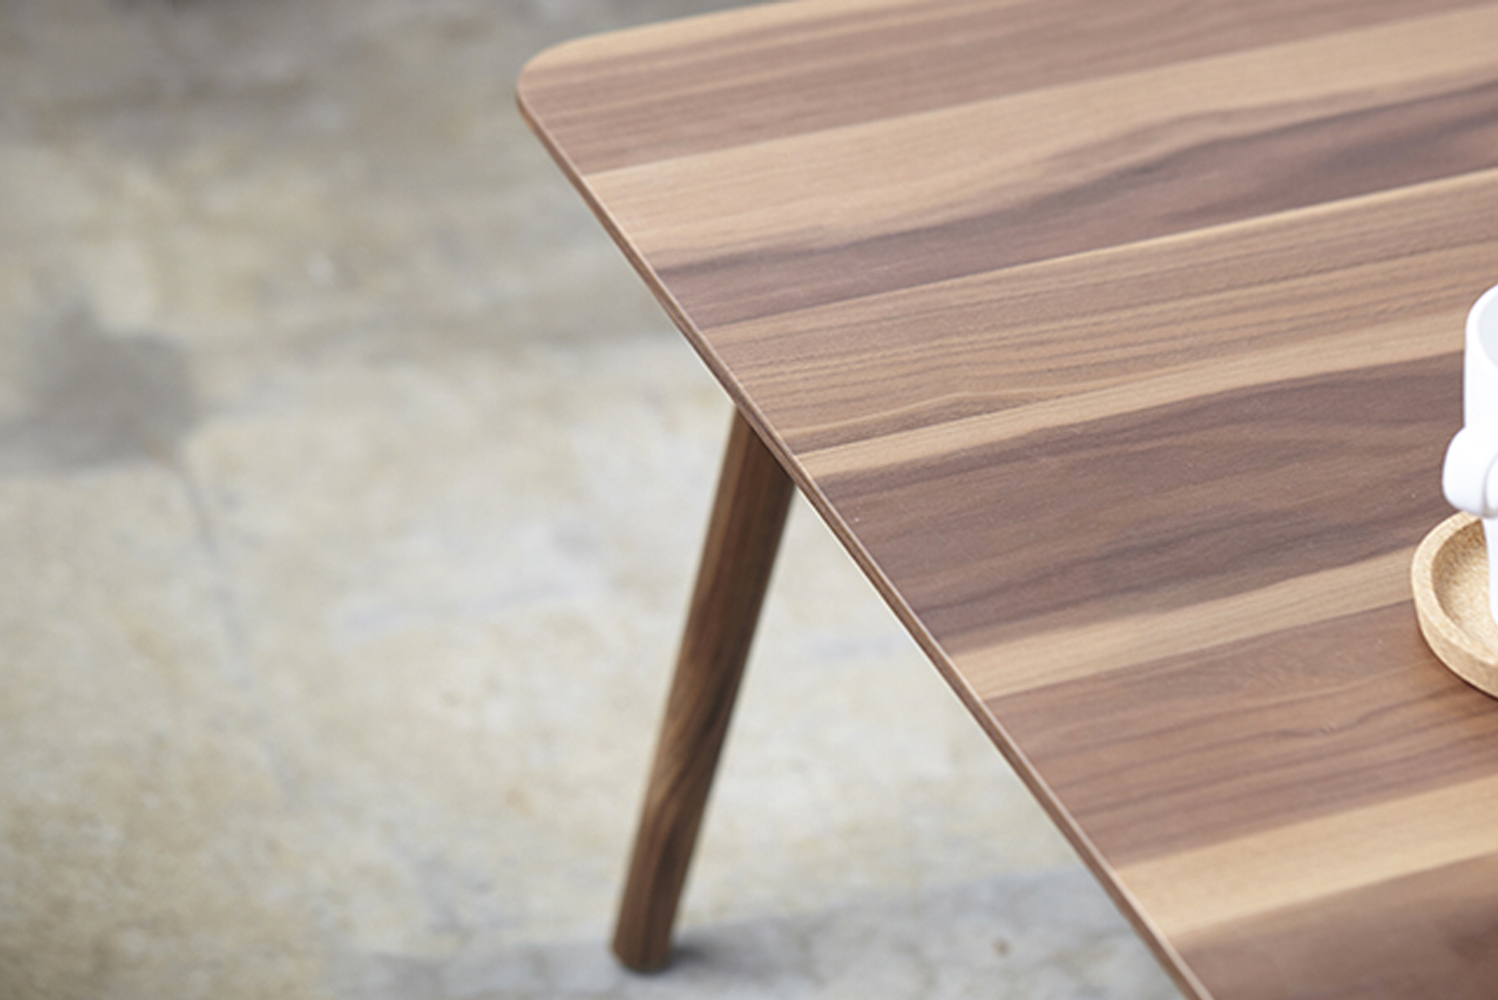 Hightower offers Bello in coffee- and side-table models.